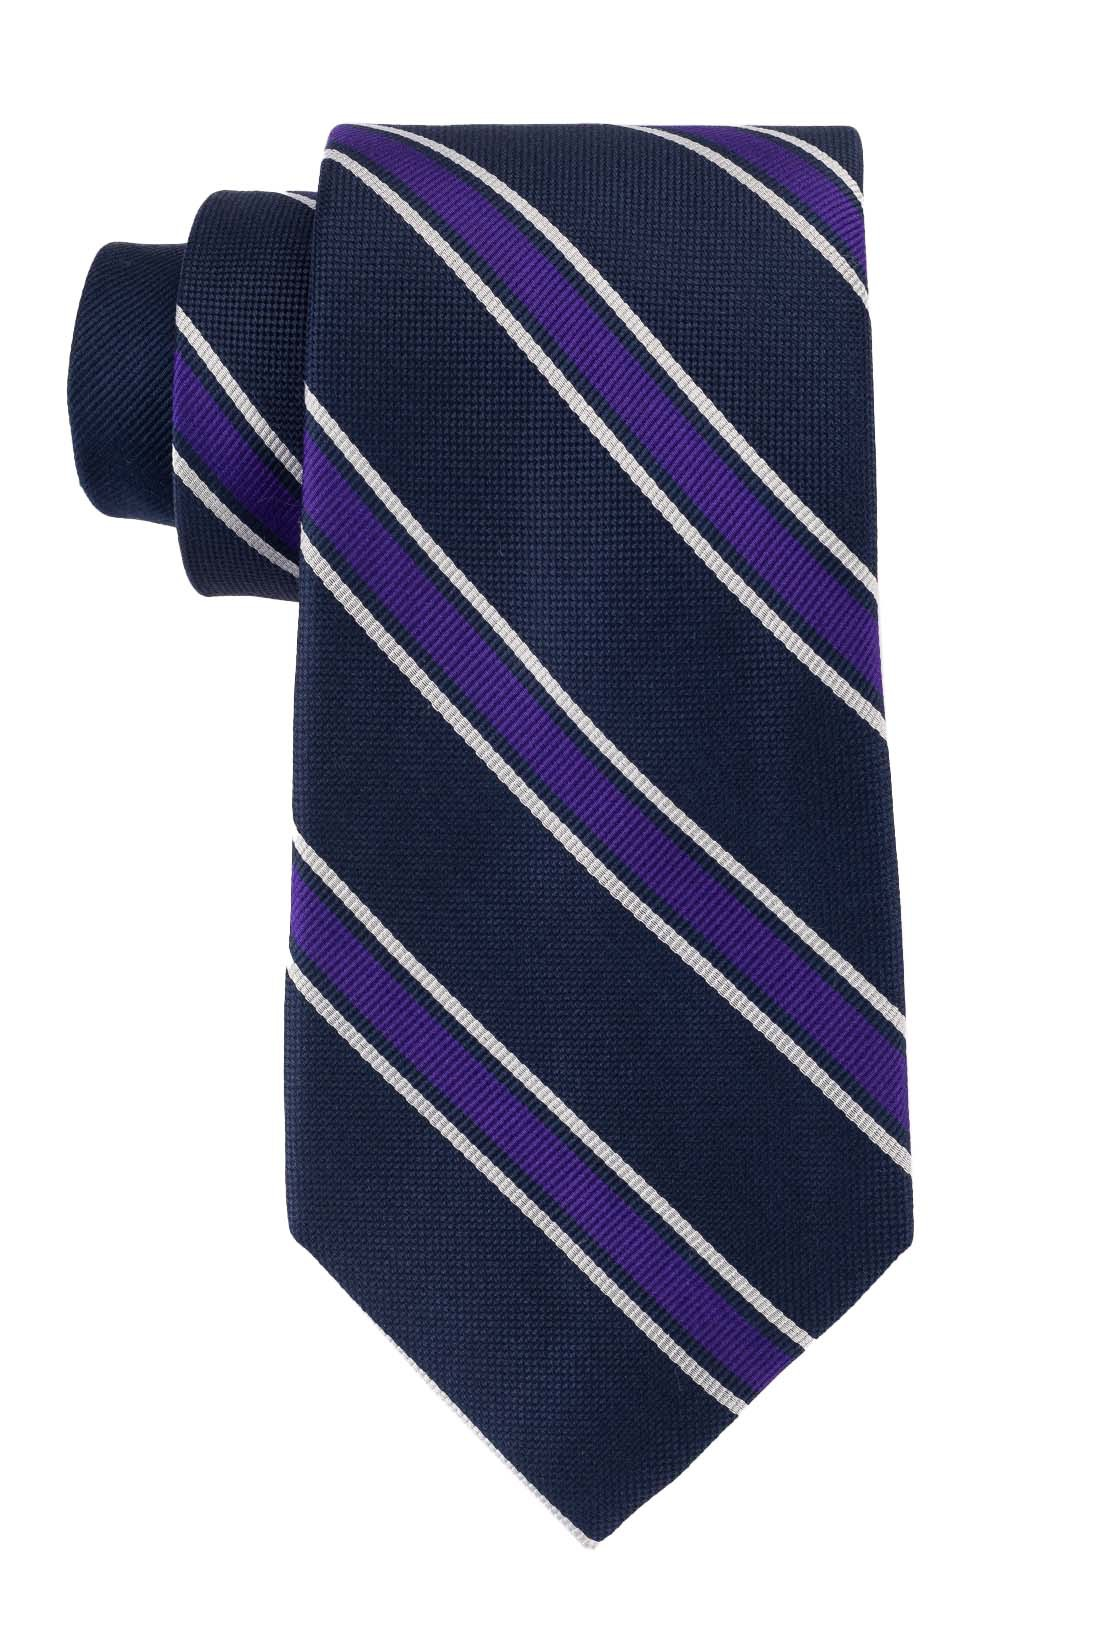 Lumber Blue with Purple Stripe 100% Silk Necktie